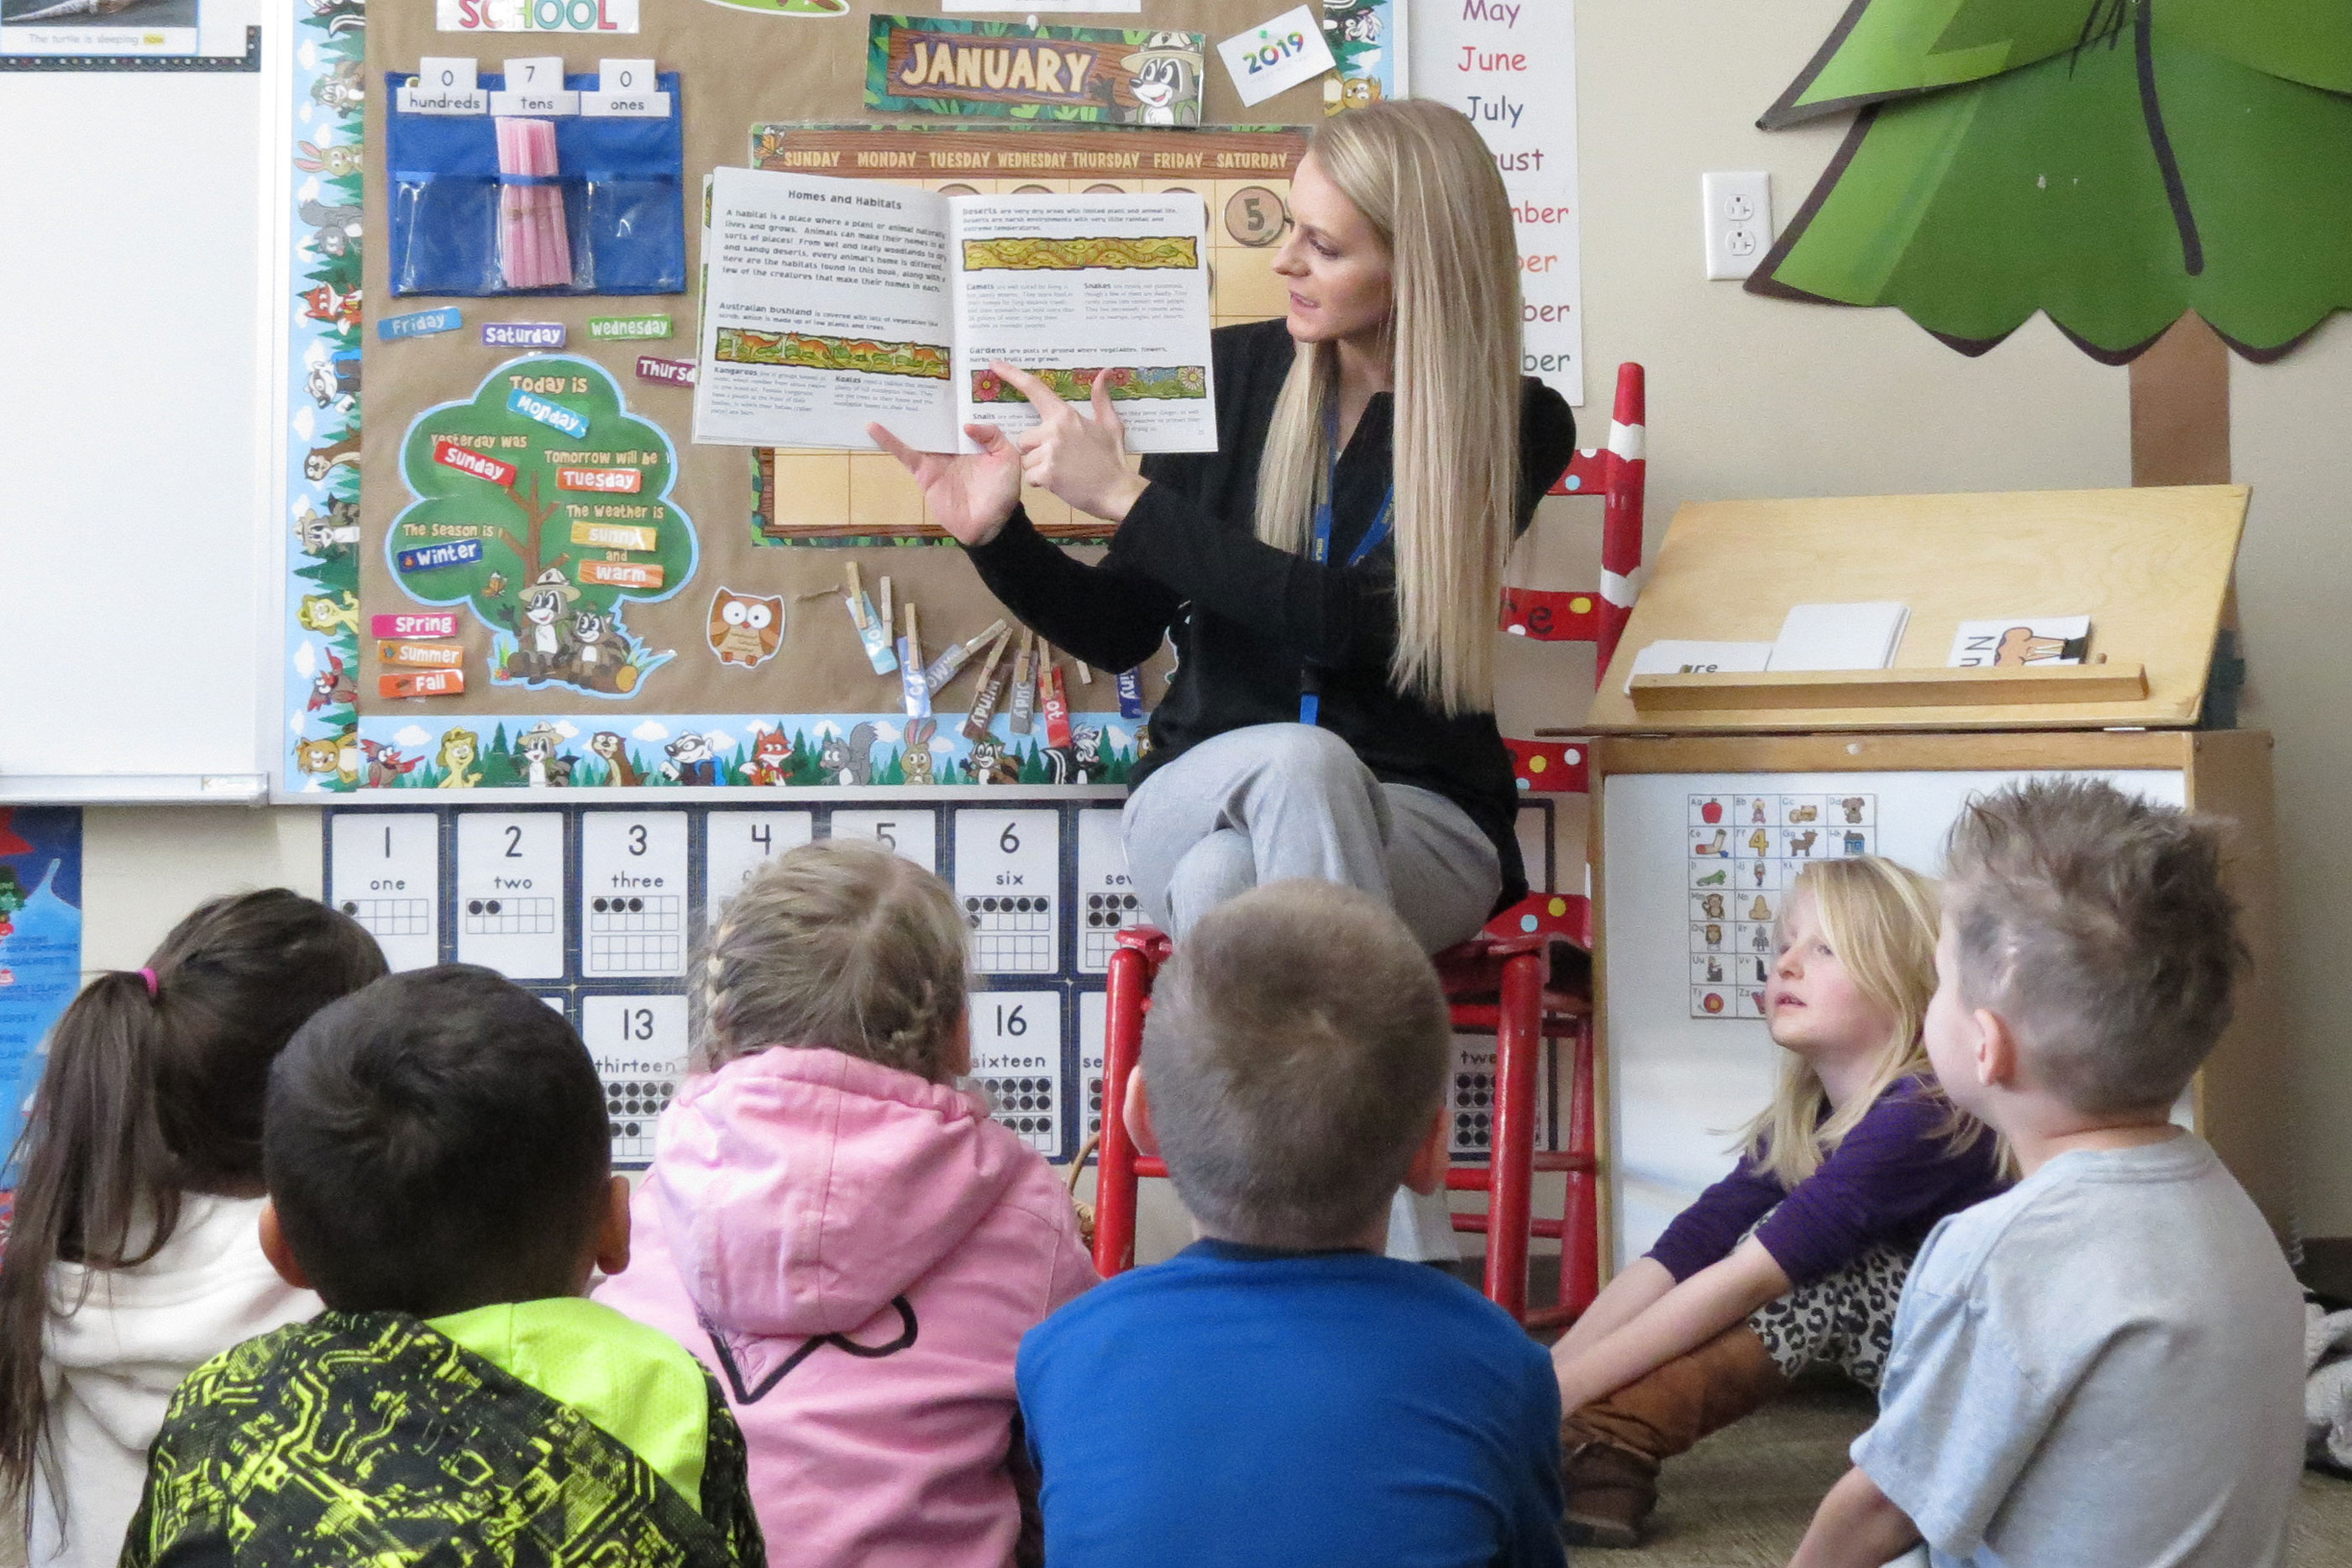 Simla Elementary School kindergarten teacher Holly Koehn reads to her class. Simla Elementary is part of the rural Big Sandy School District in rural Elbert County.